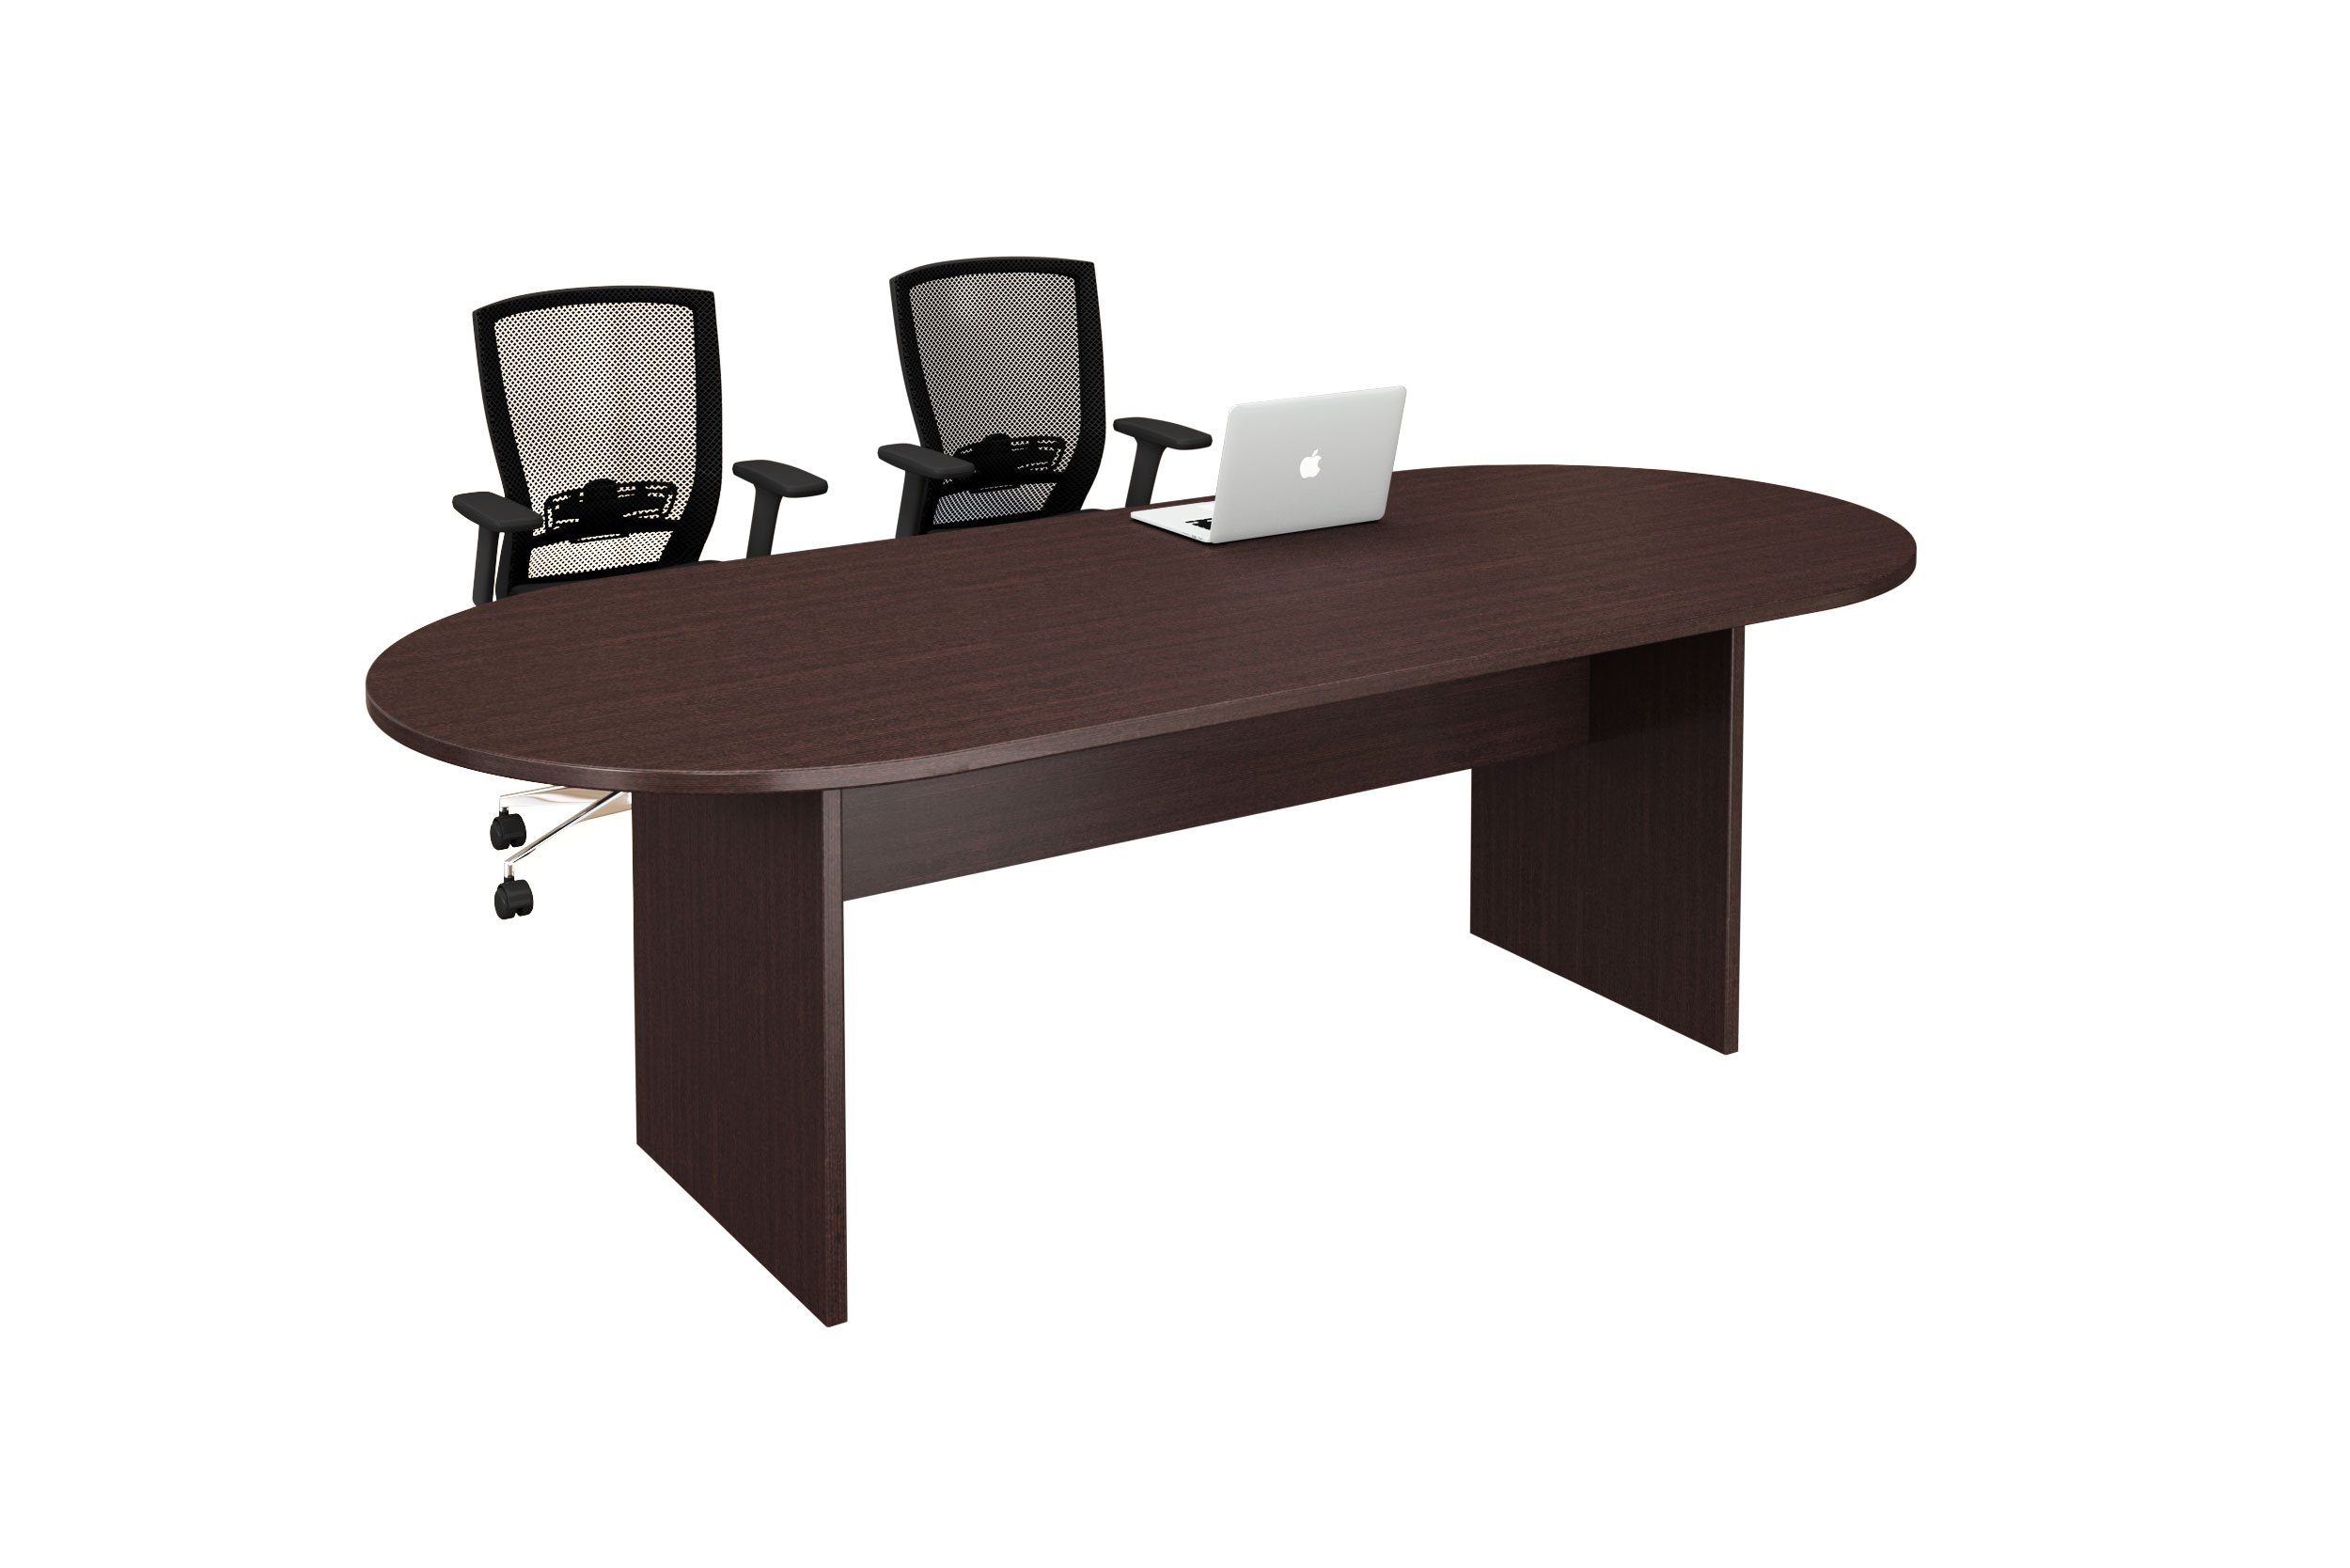 LDF 2100 Series Table